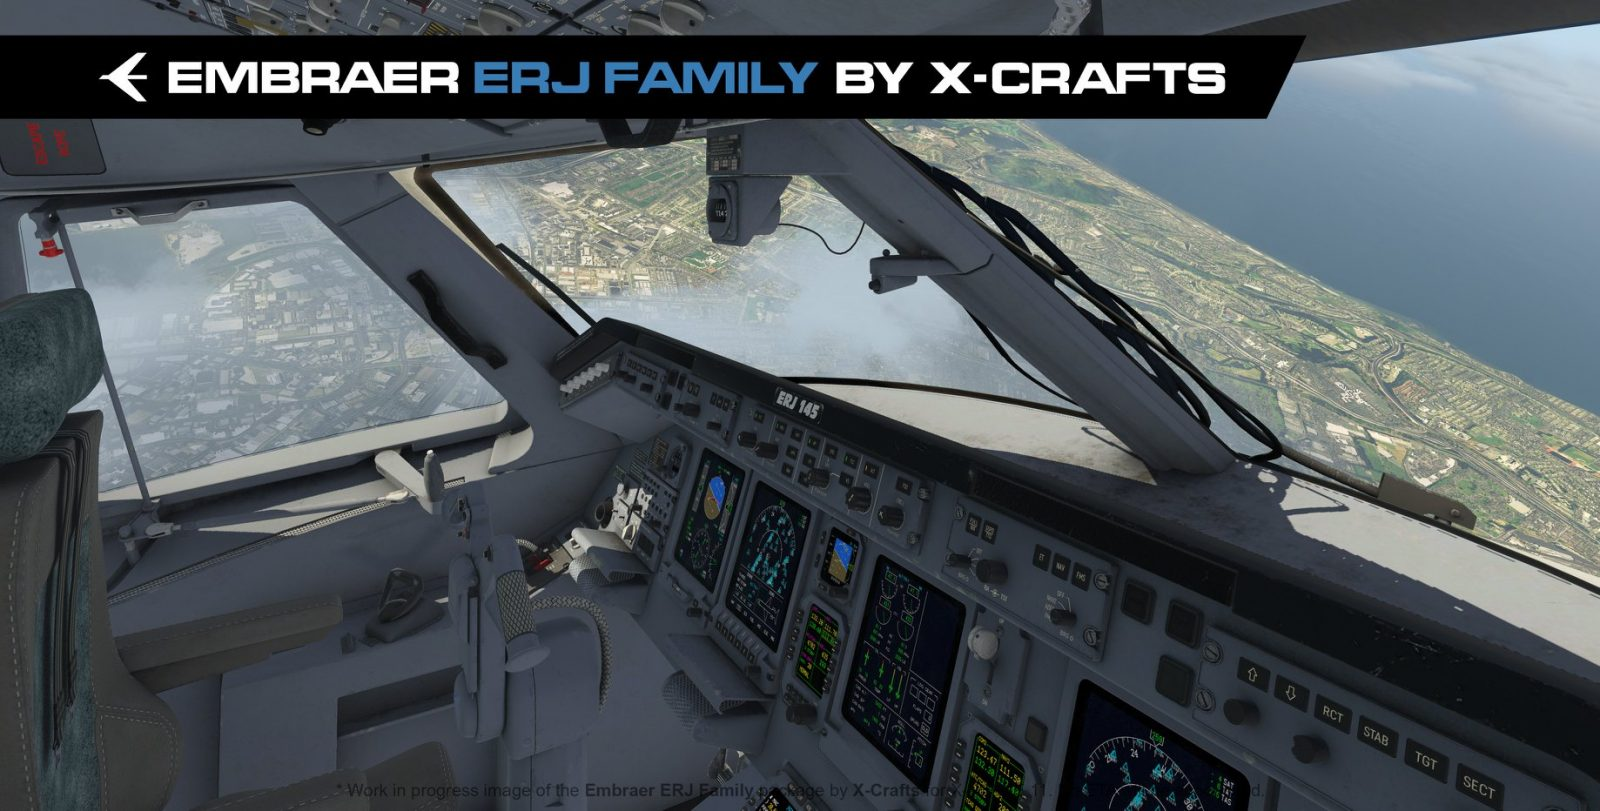 New Previews of X-Crafts' Upcoming Embraer ERJ In X-Plane 11